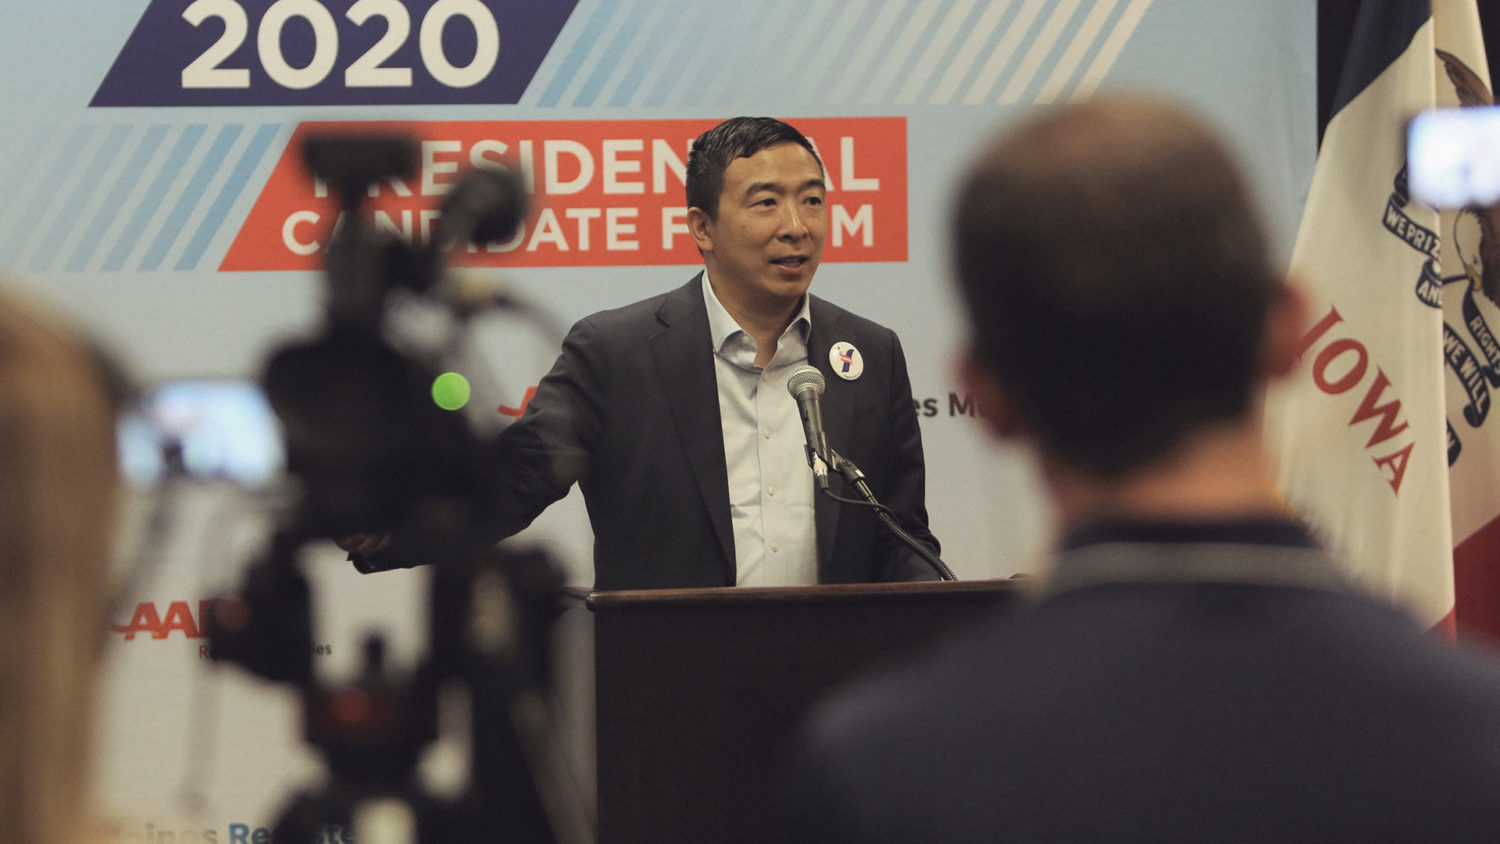 Andrew Yang says he'd make New York City a 'hub' for bitcoin if elected mayor